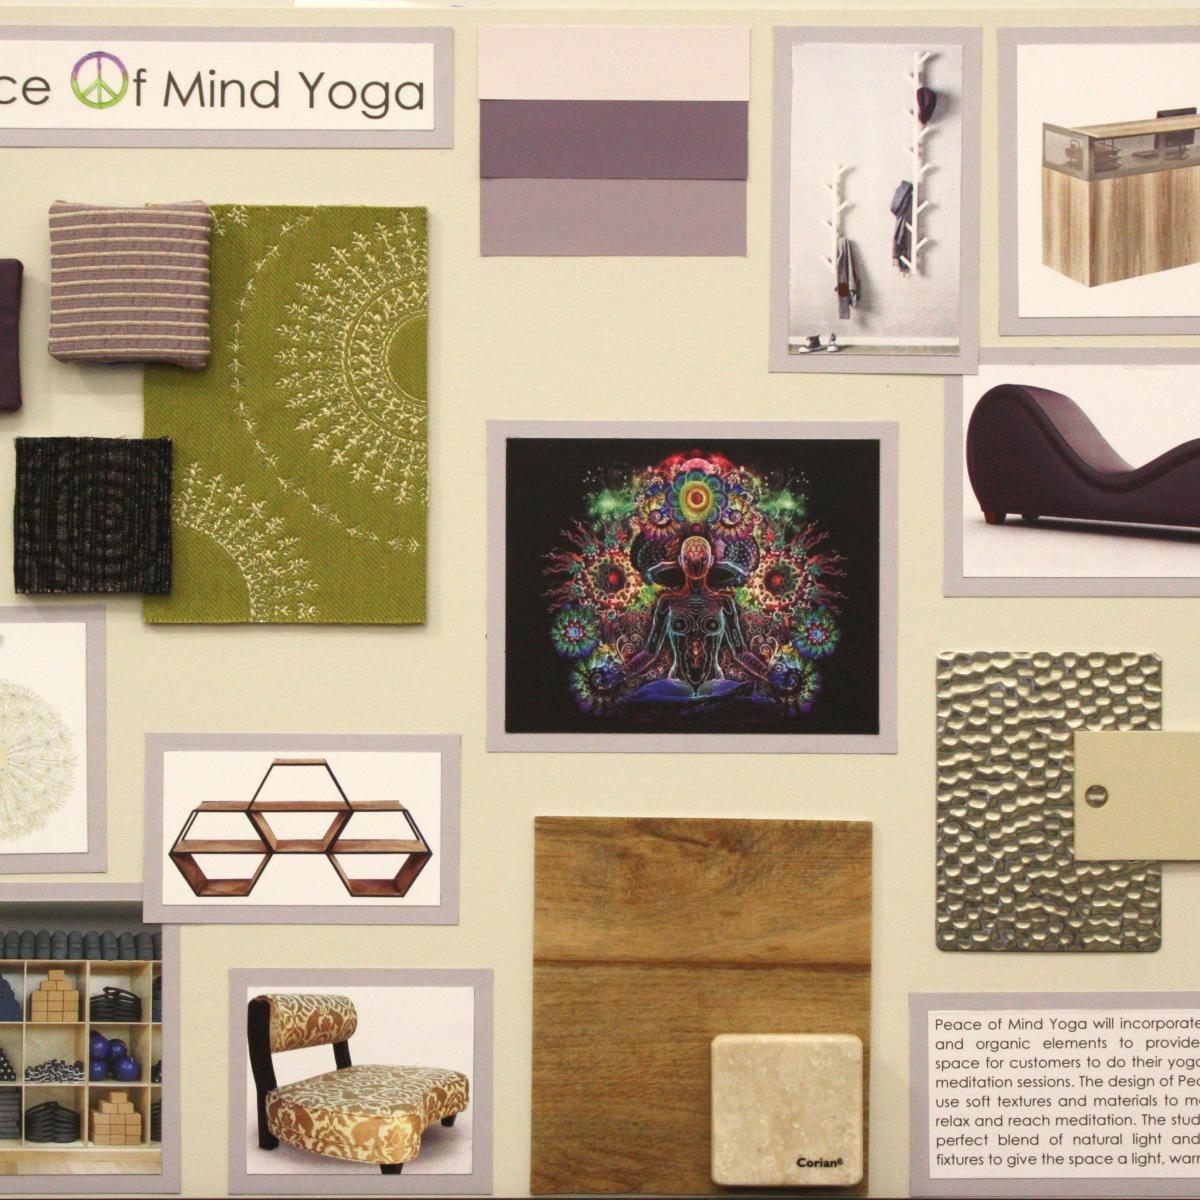 Concept board for the interior design of a yoga studio.